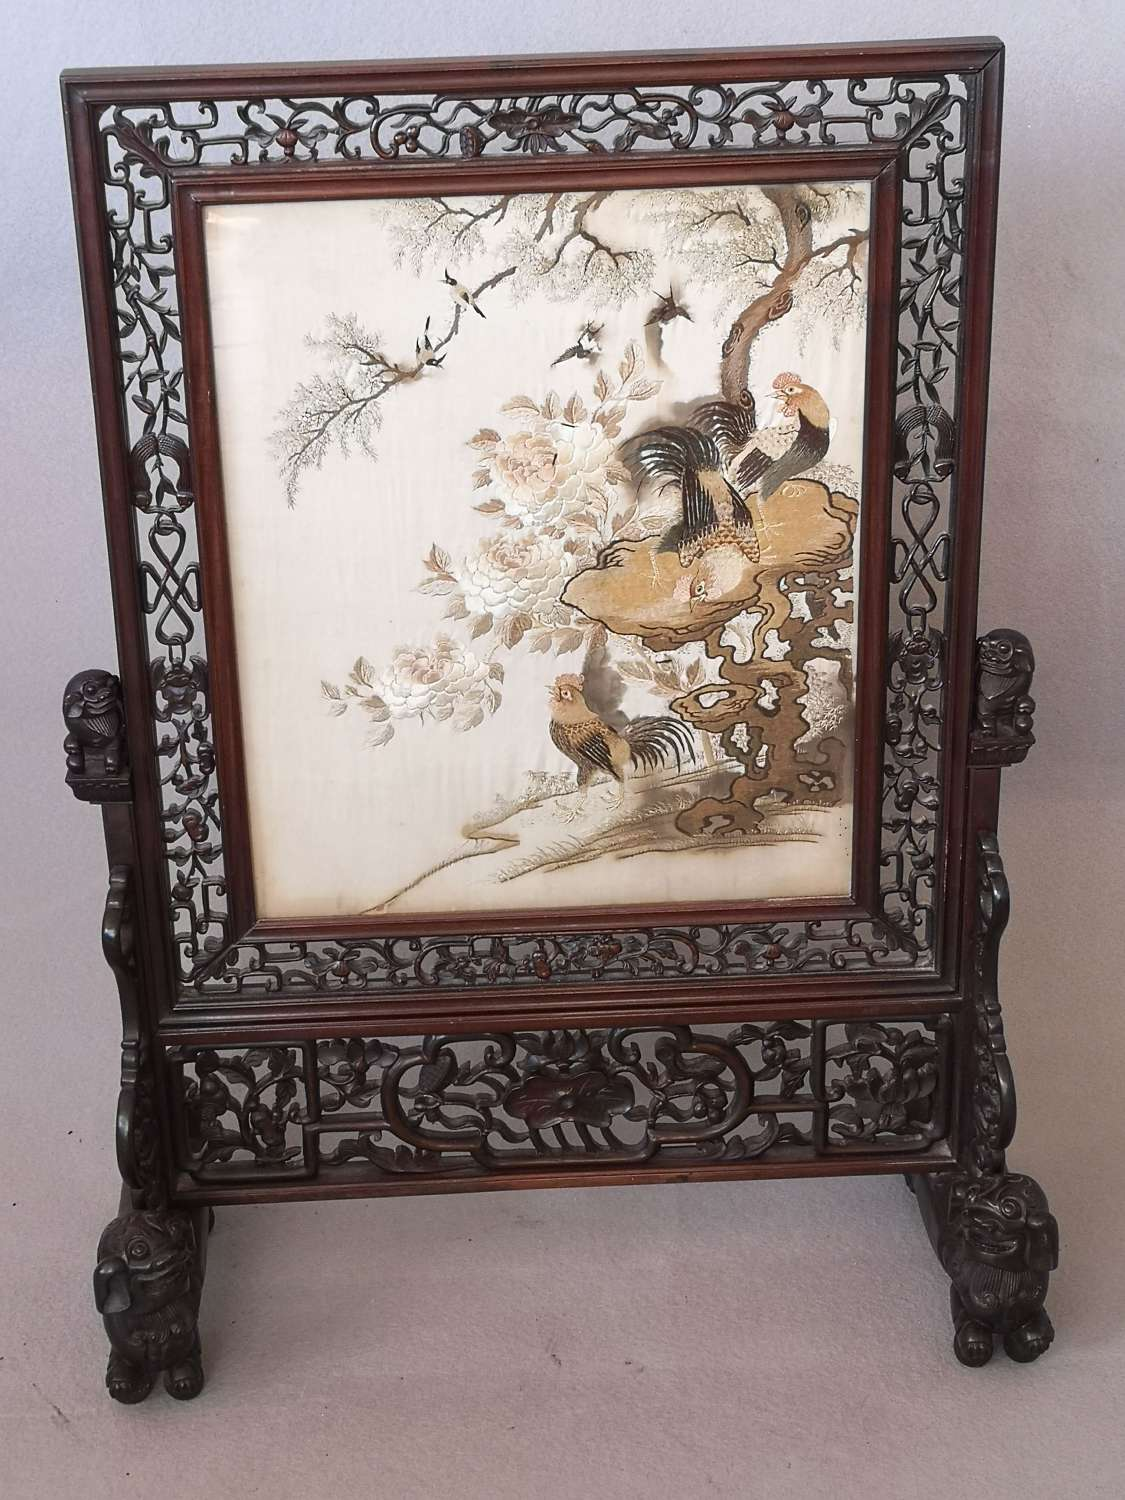 19th century Chinese rosewood firescreen